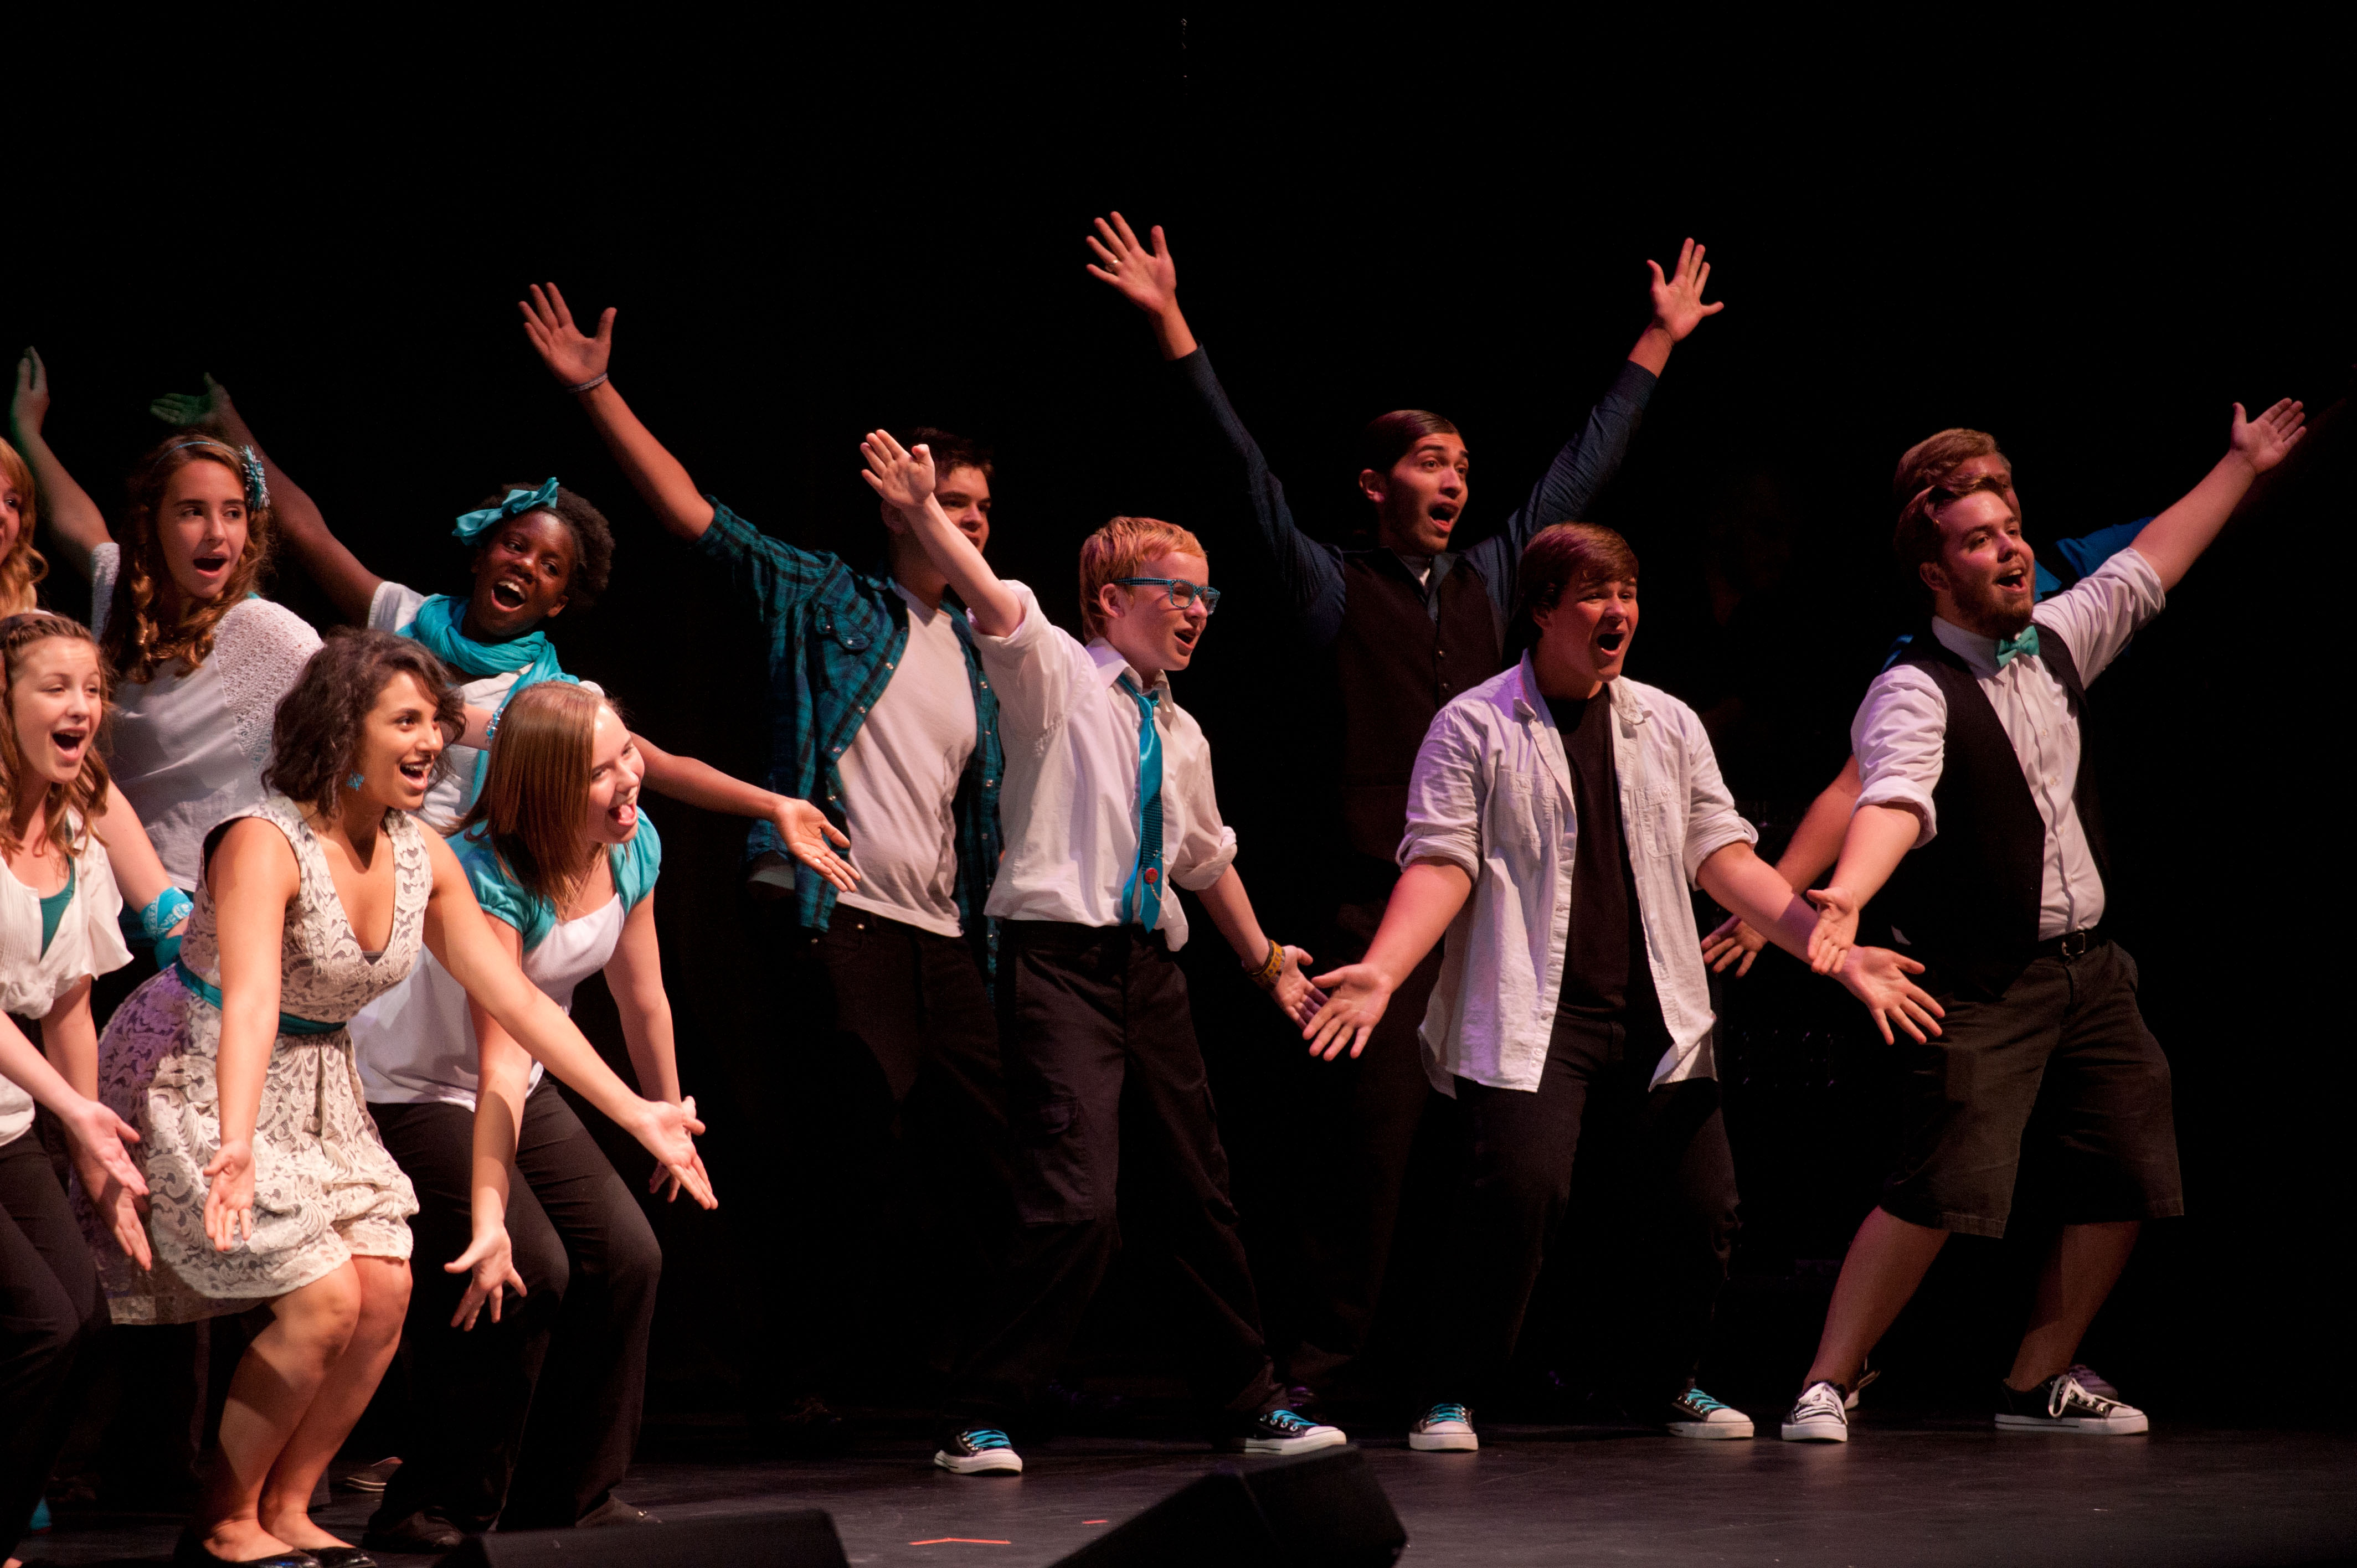 turlock-youth-performing-arts-troupe